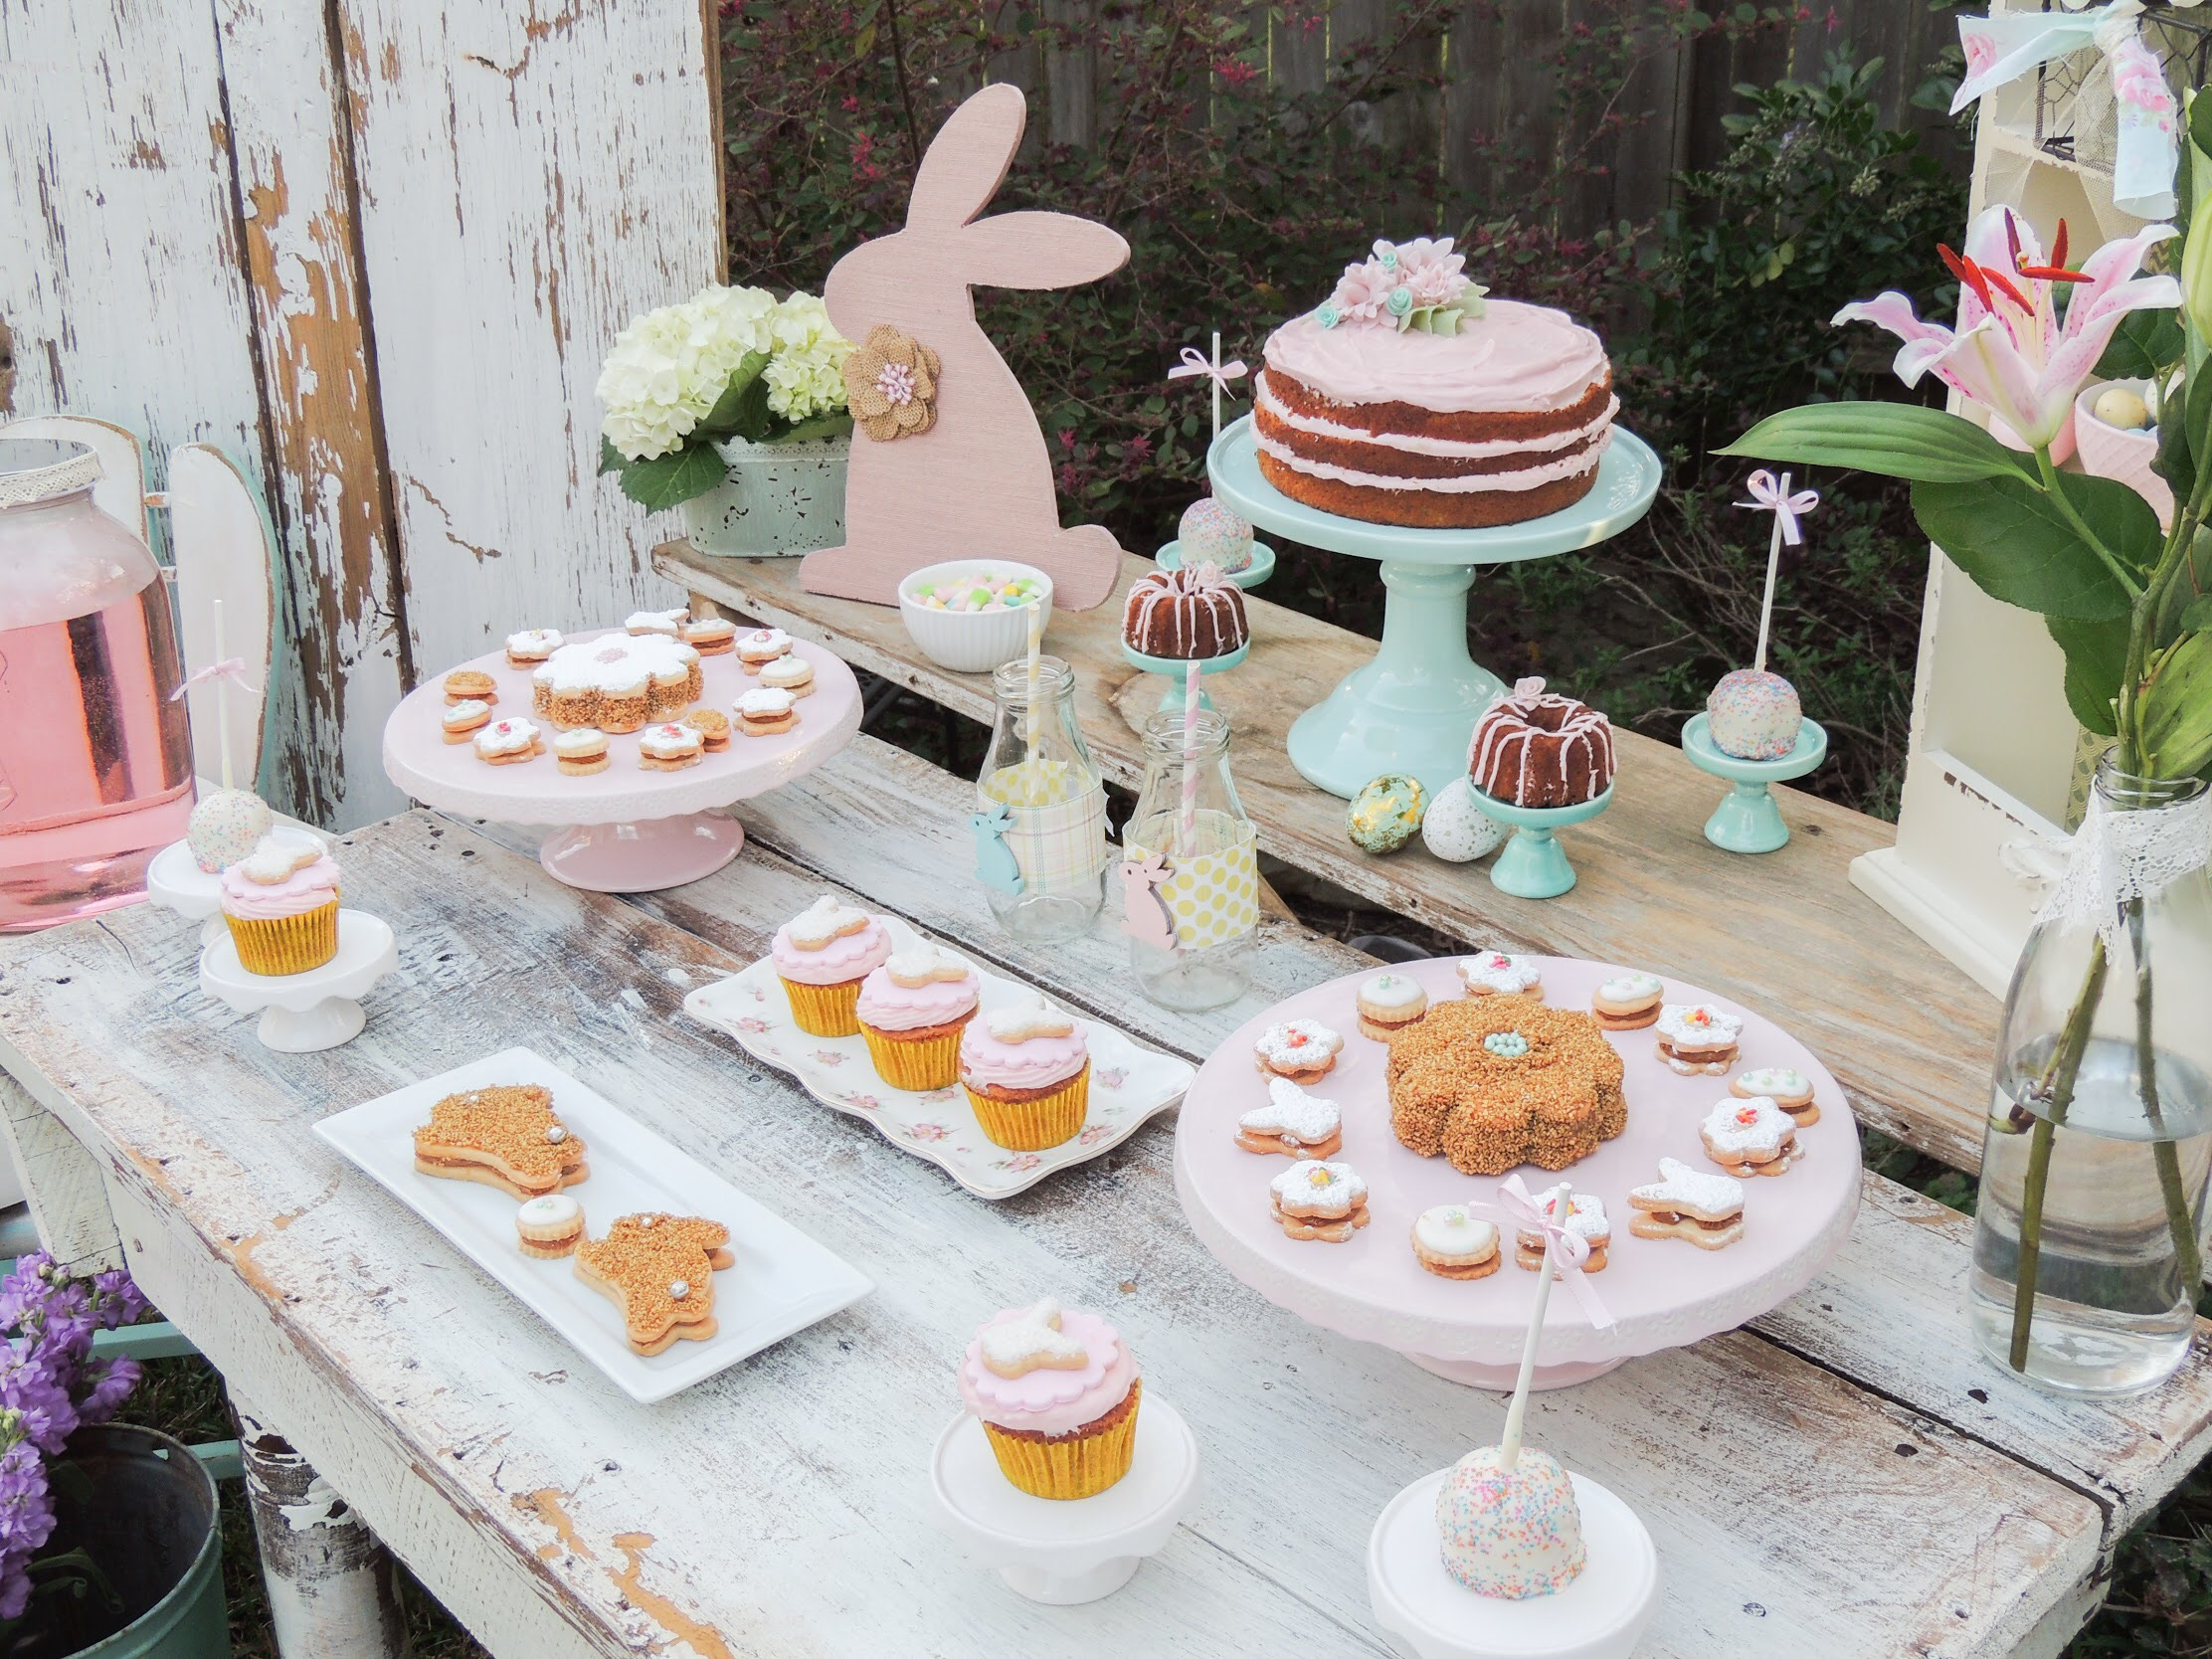 Shabby Chic Easter Dessert Party ideas from Mint Event Design